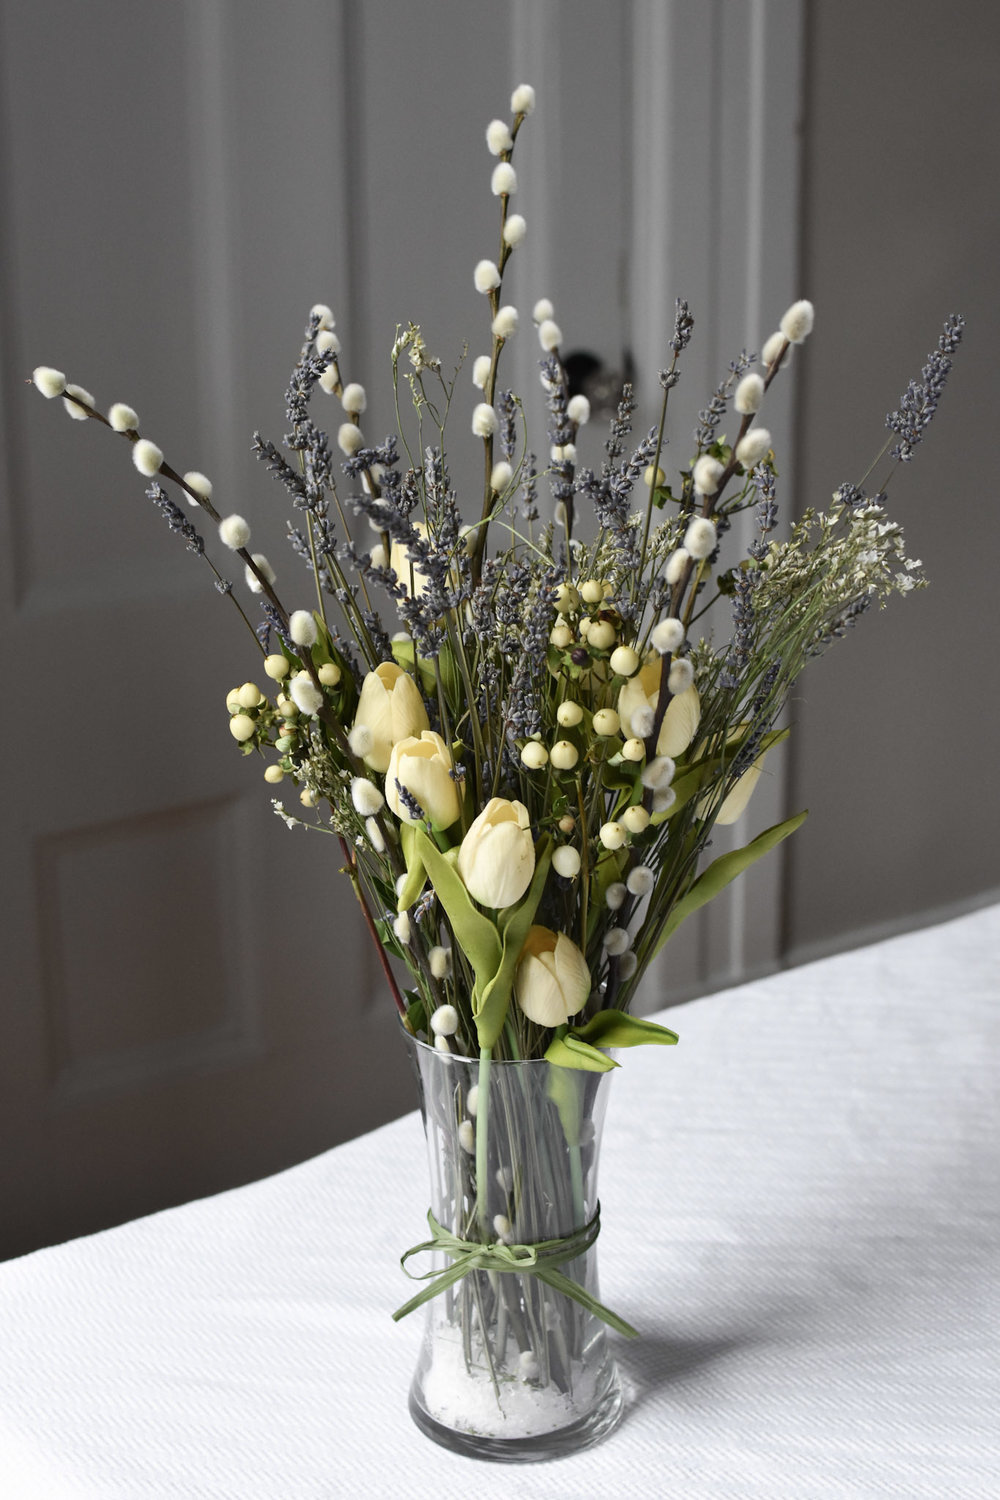 For a long-lasting arrangement that needs no watering, tuck faux tulips into a slender vase together with fragrant lavender, delicate limonium and a few branches of soft pussy willow.  Stems of hypericum berries may be added as well, just be sure to pinch off the leaves as they will otherwise wither to an unsightly brown.